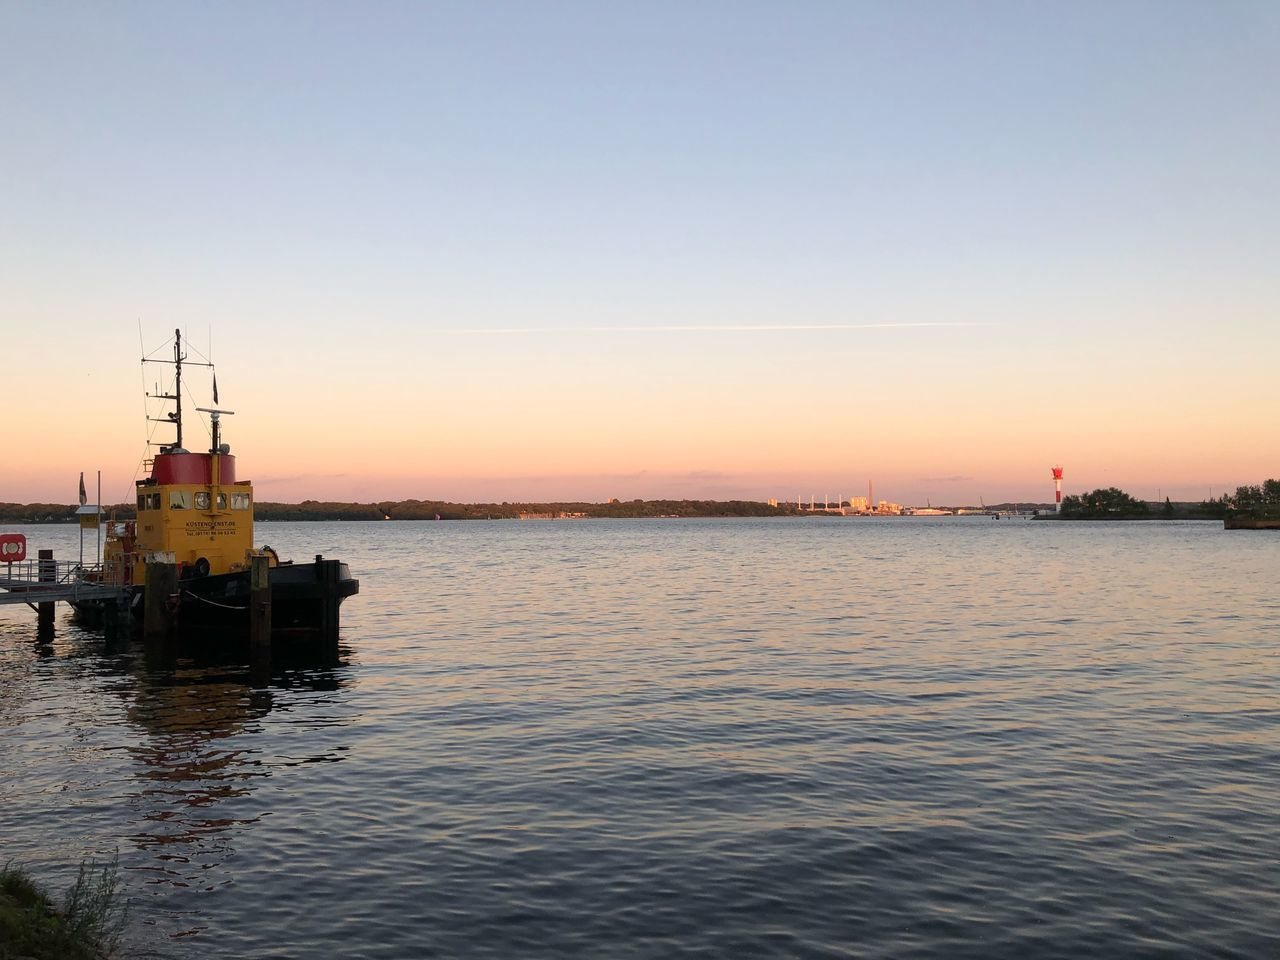 water, sky, sunset, waterfront, sea, beauty in nature, transportation, nautical vessel, architecture, clear sky, scenics - nature, nature, copy space, built structure, reflection, mode of transportation, orange color, no people, tranquil scene, outdoors